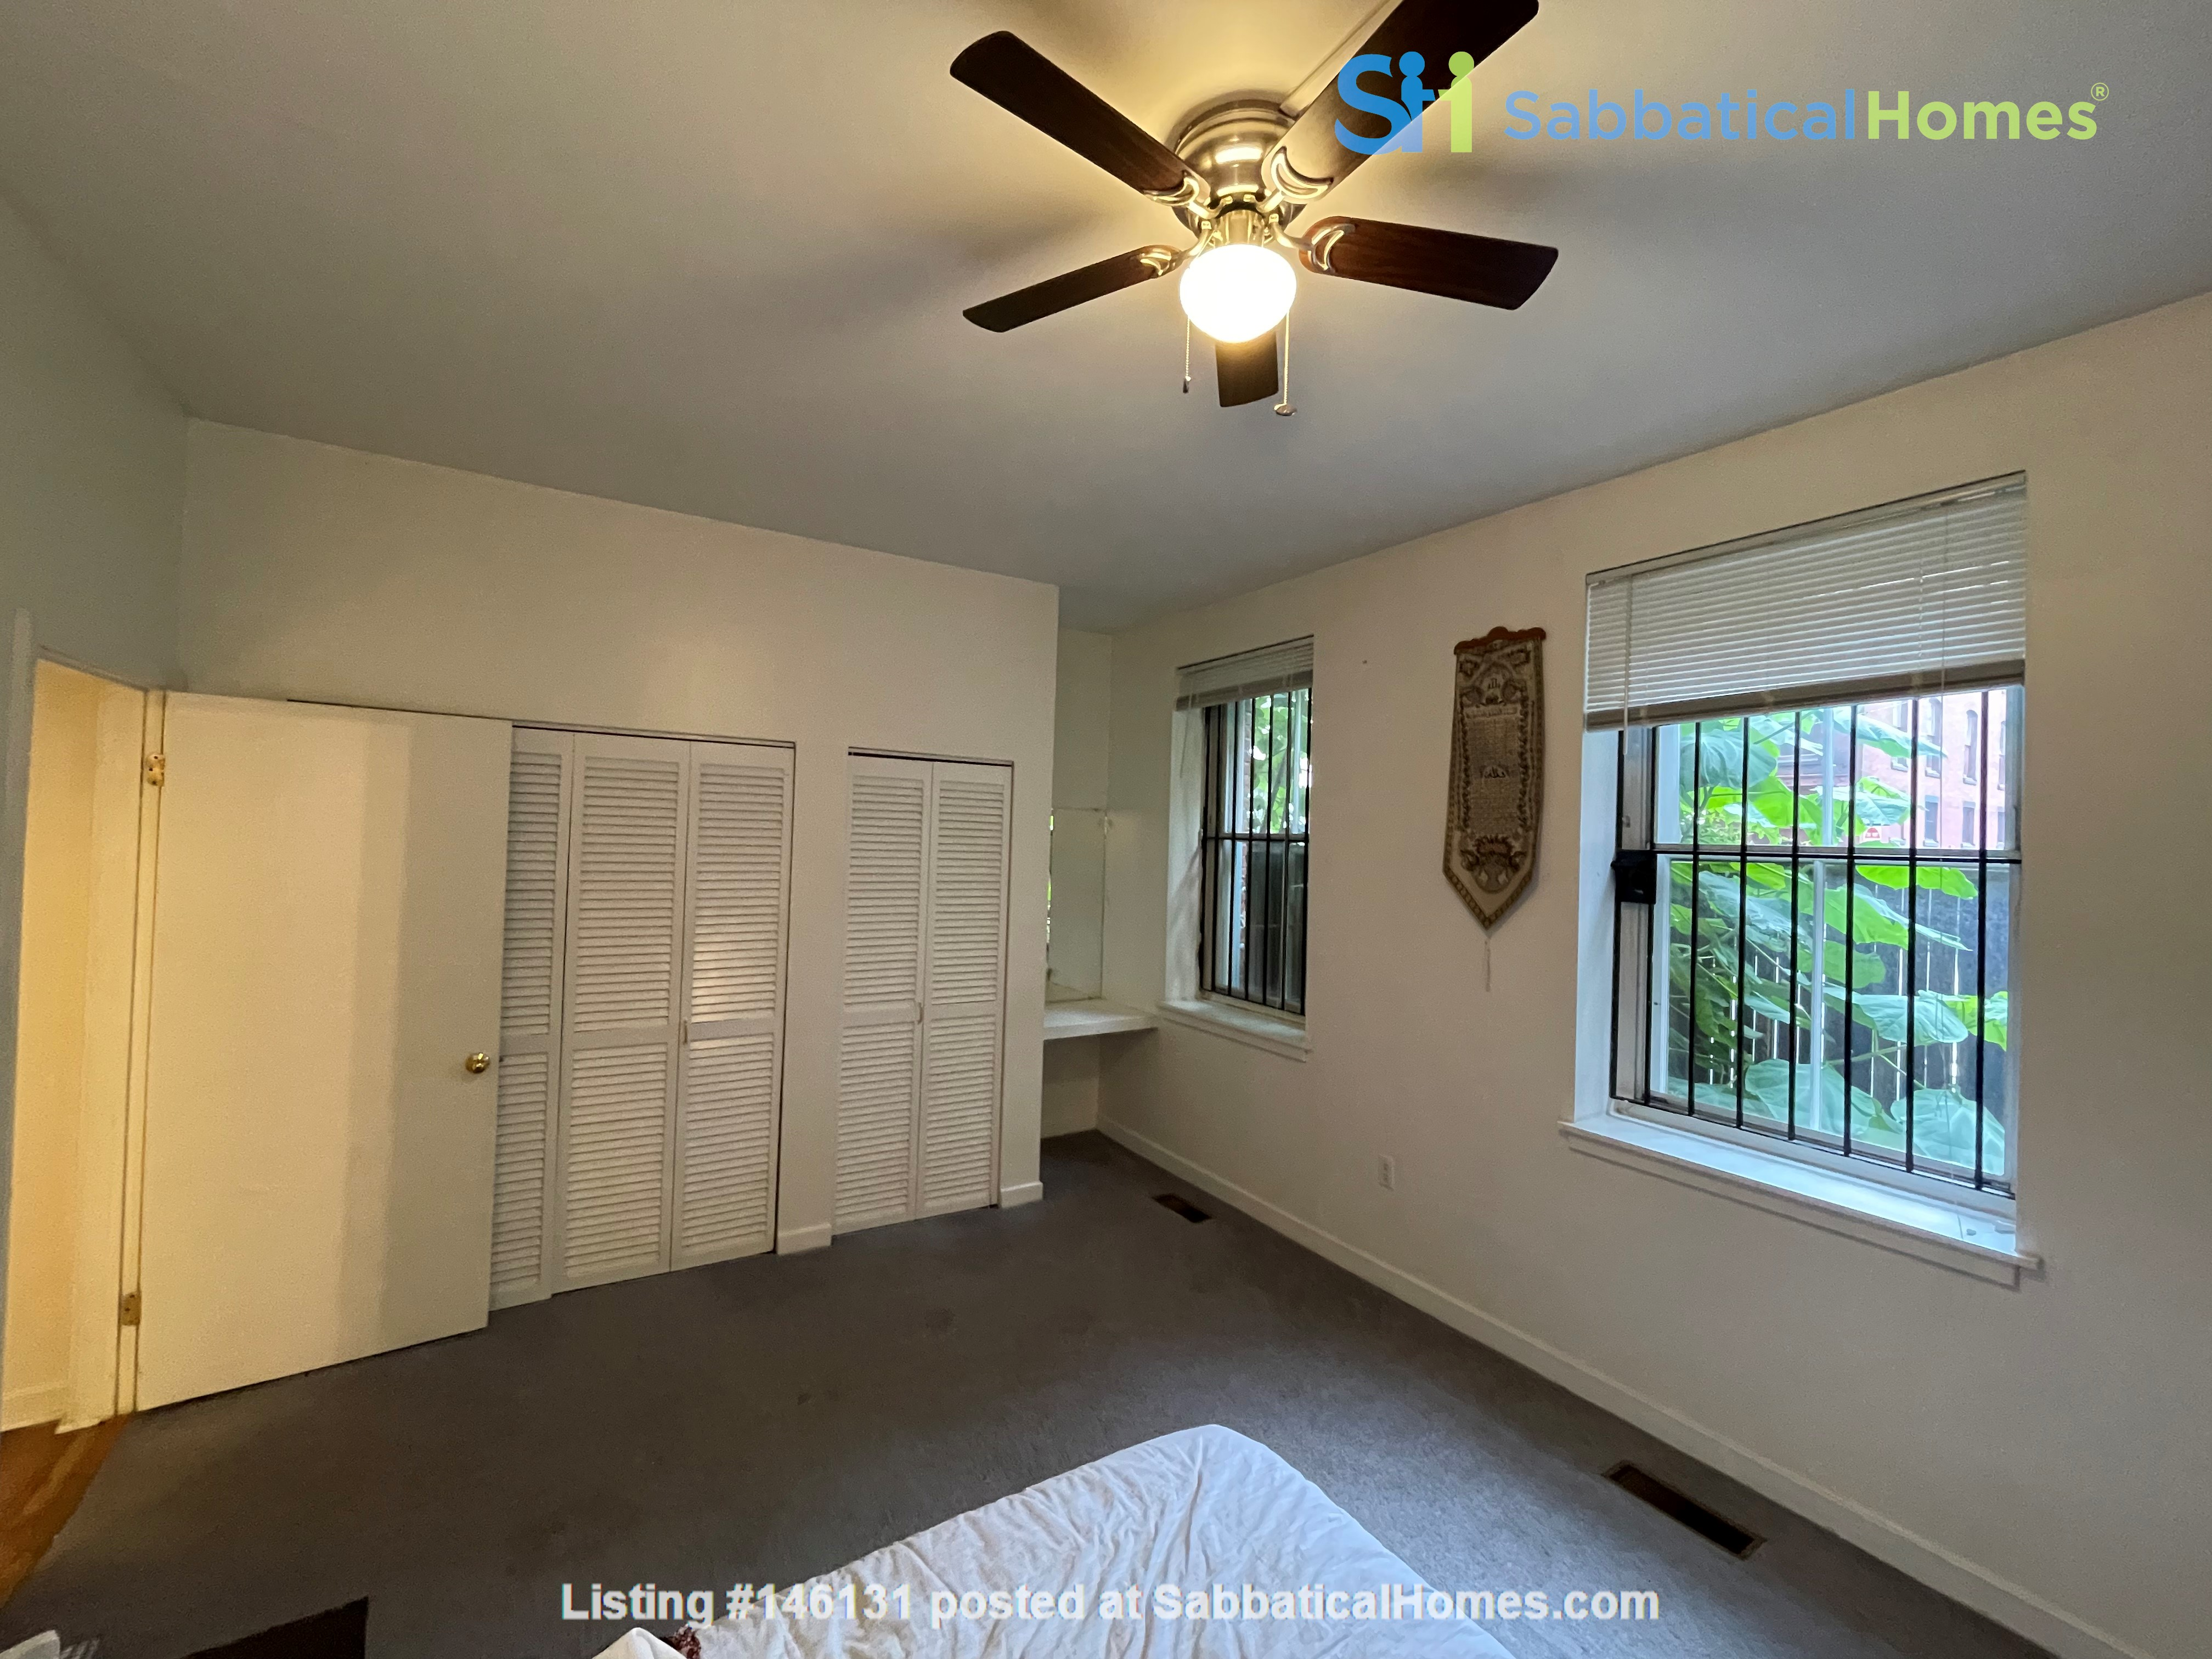 Spacious Old City 1 bedroom available Aug 1 -a city oasis! Home Rental in Philadelphia 4